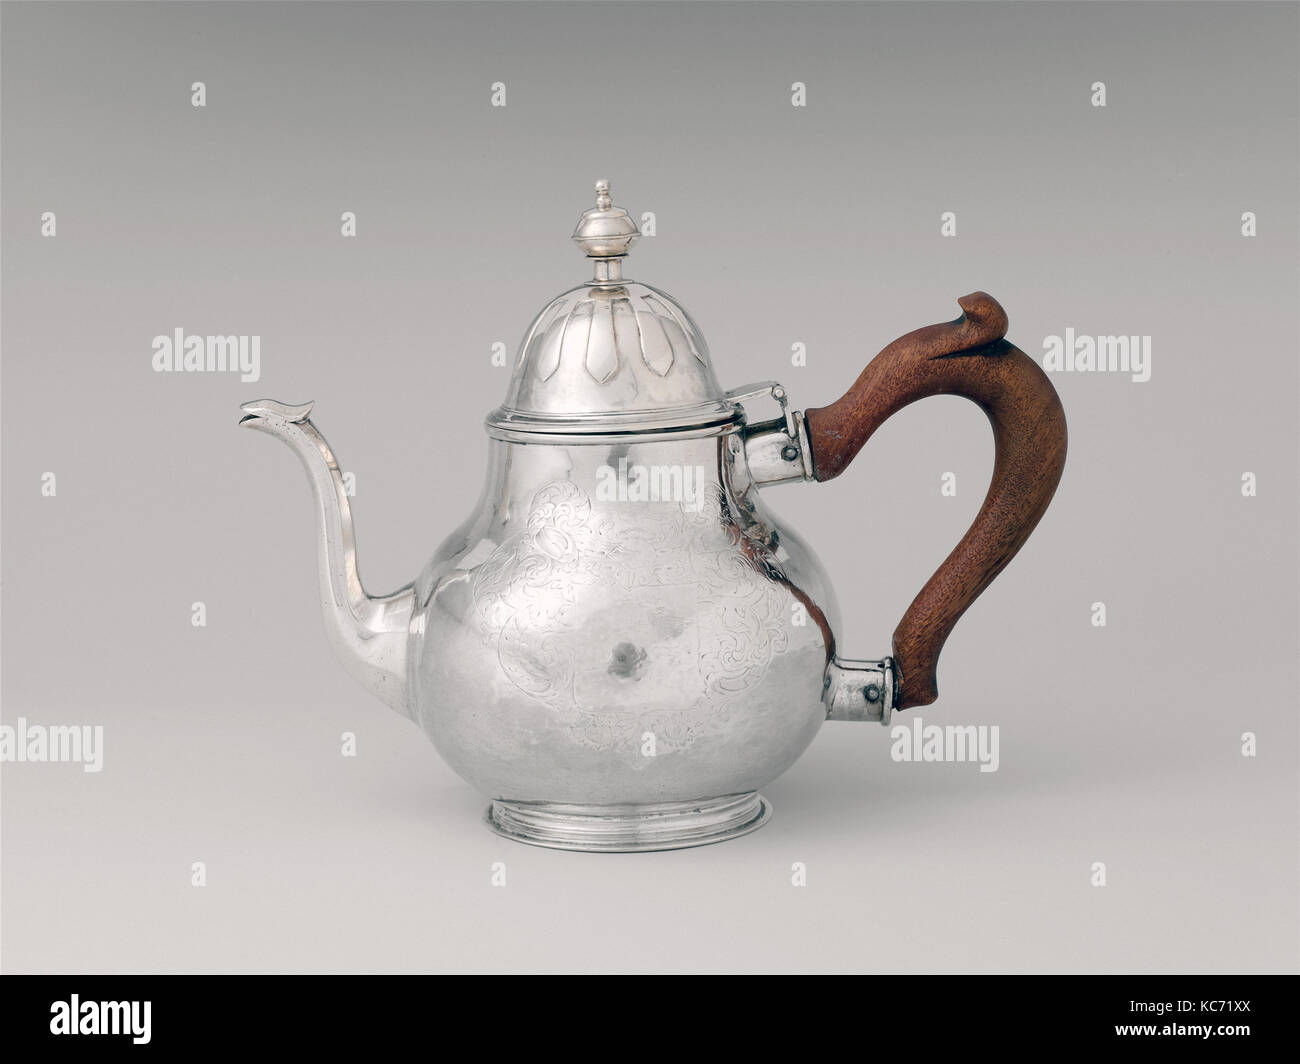 Teapot, ca. 1720, Made in New York, New York, United States, American, Silver, 7 3/16 × 9 5/16 in., 563.5g, - Stock Image